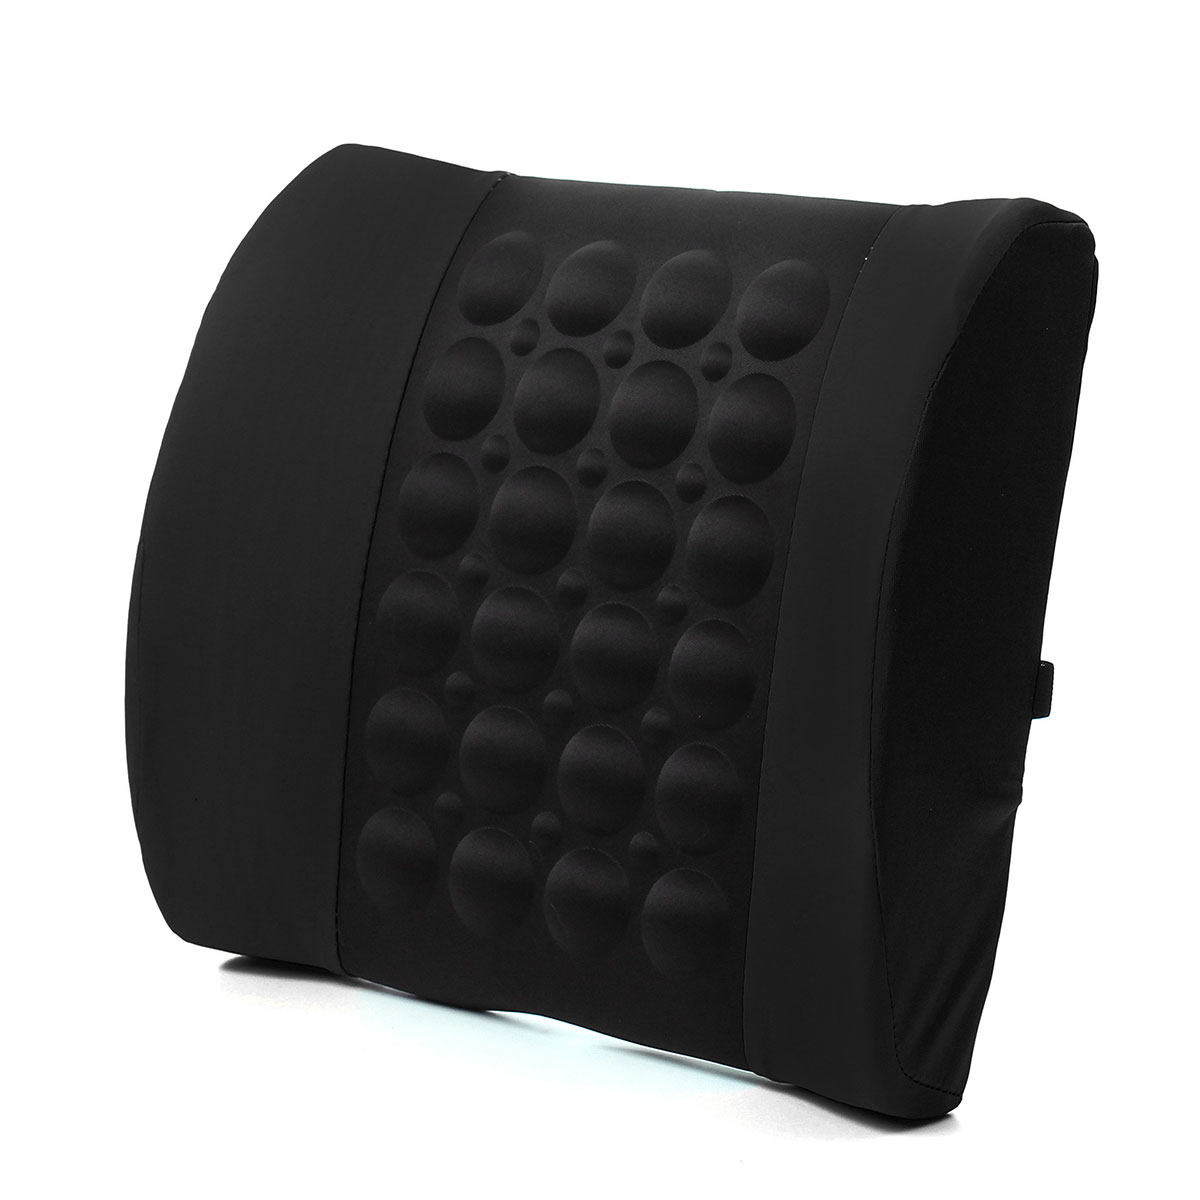 black electrical car massage lumbar support cushion vehicle back seat relaxation waist support pillow